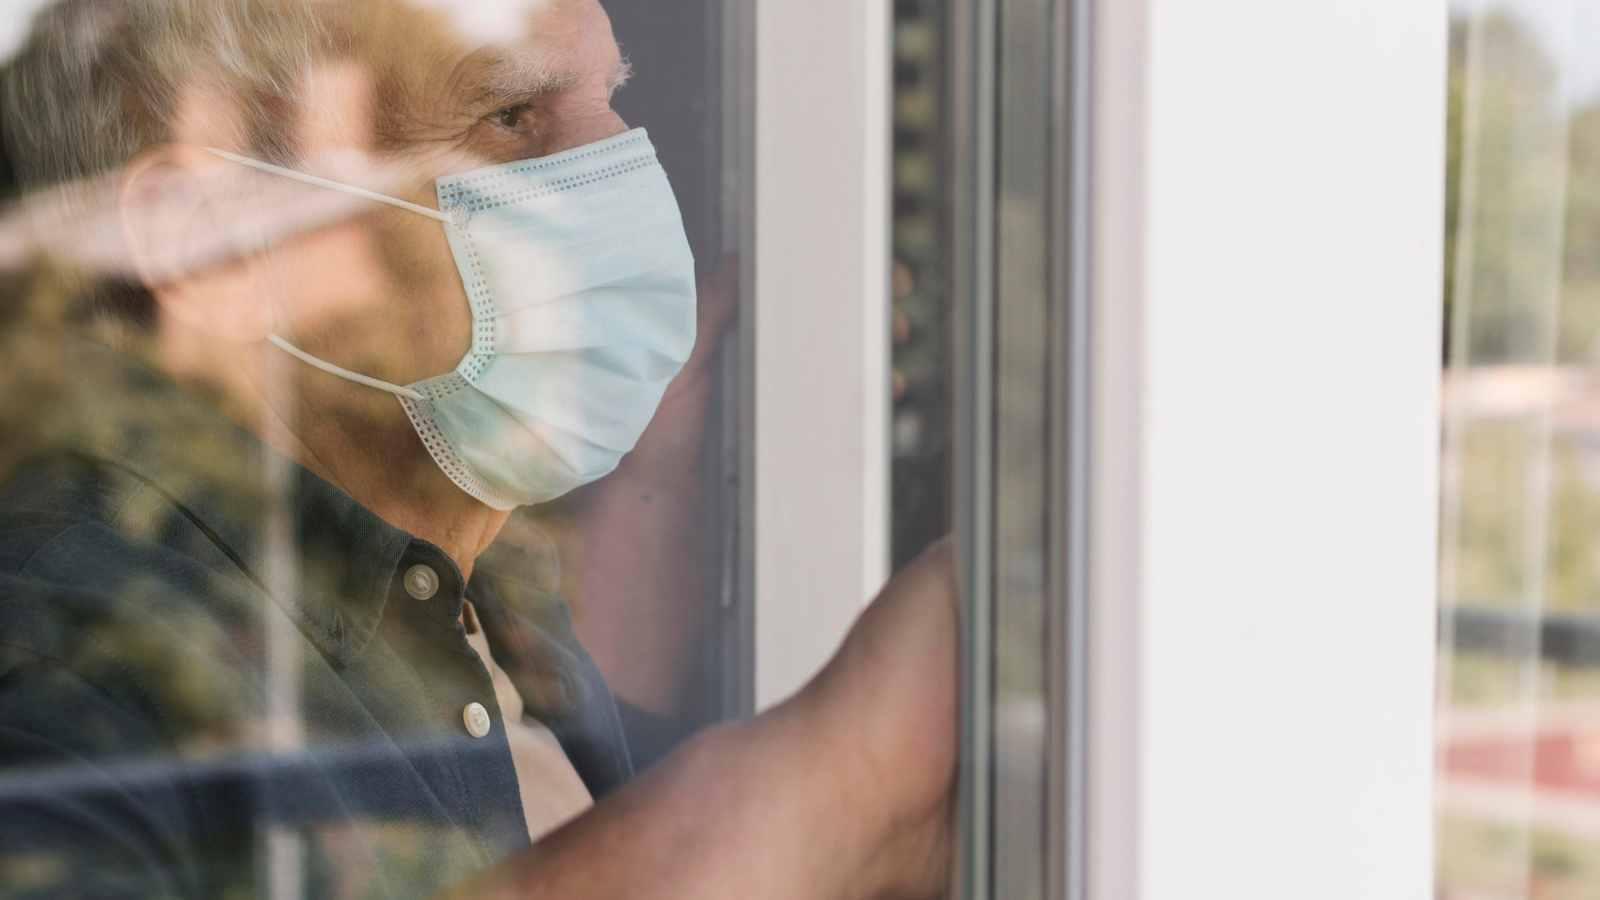 "<h5>OUR REPORTS</h5><h4>PPE SHORTAGES</h4><p>Seven months into the pandemic, 20 percent of homes lacked enough supplies</p><p><a href=""/feature/usp/nursing-home-safety-during-covid-ppe-shortages"" style='text-decoration:underline!important;'>Learn more</a></p>"